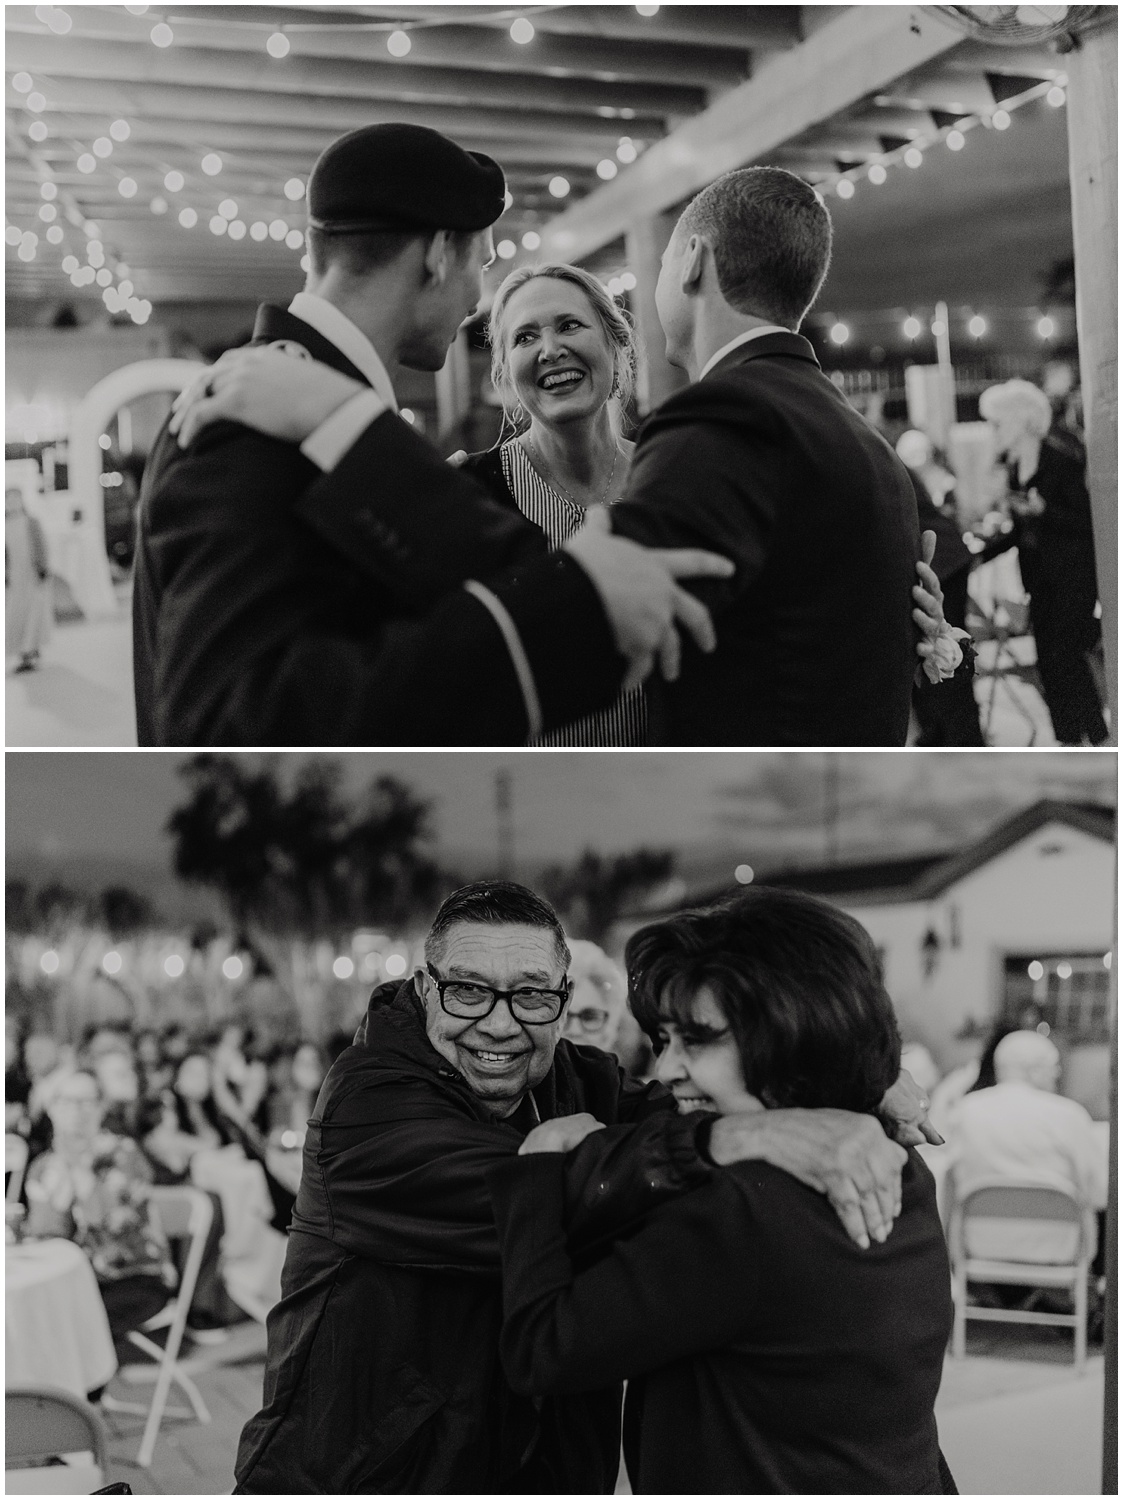 Couple invites all the Mother's and Son's to the dance floor to share in the parent dances during the reception.